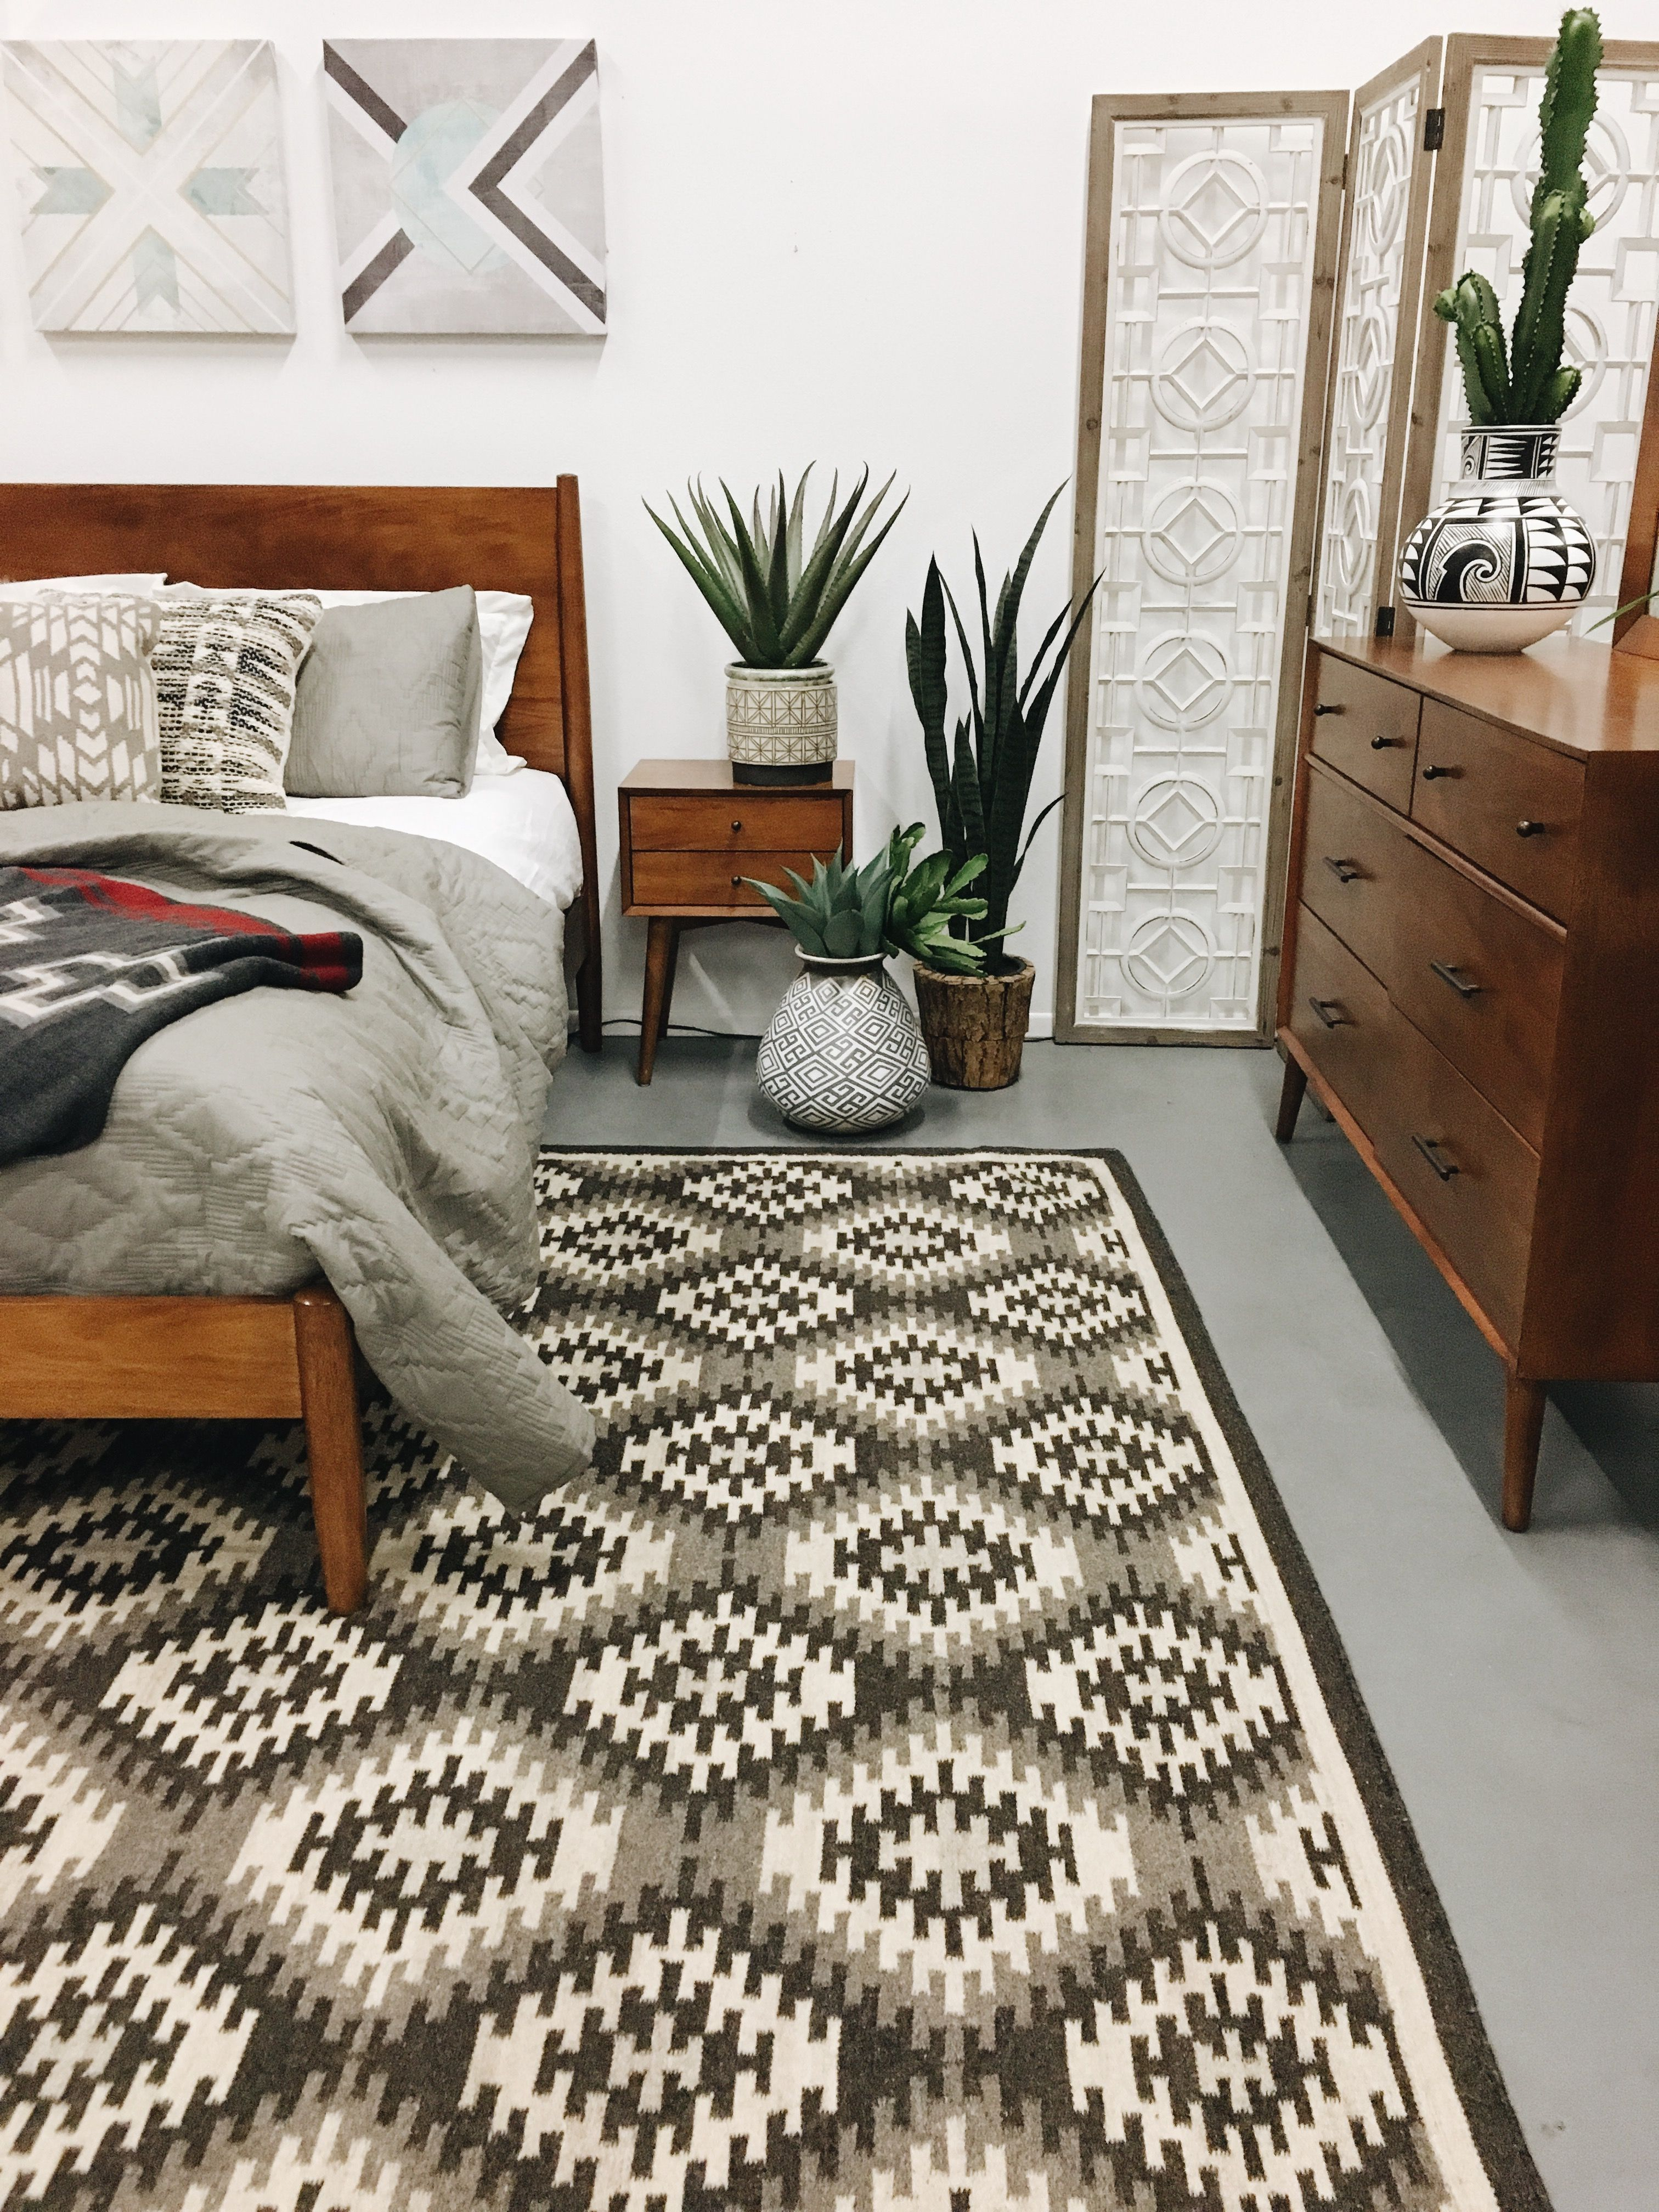 Delightful Midtown Bedroom Collection | American Home Furniture And Mattress |  Albuquerque, Santa Fe, Farmington. Southwest Mid Century Modern ...